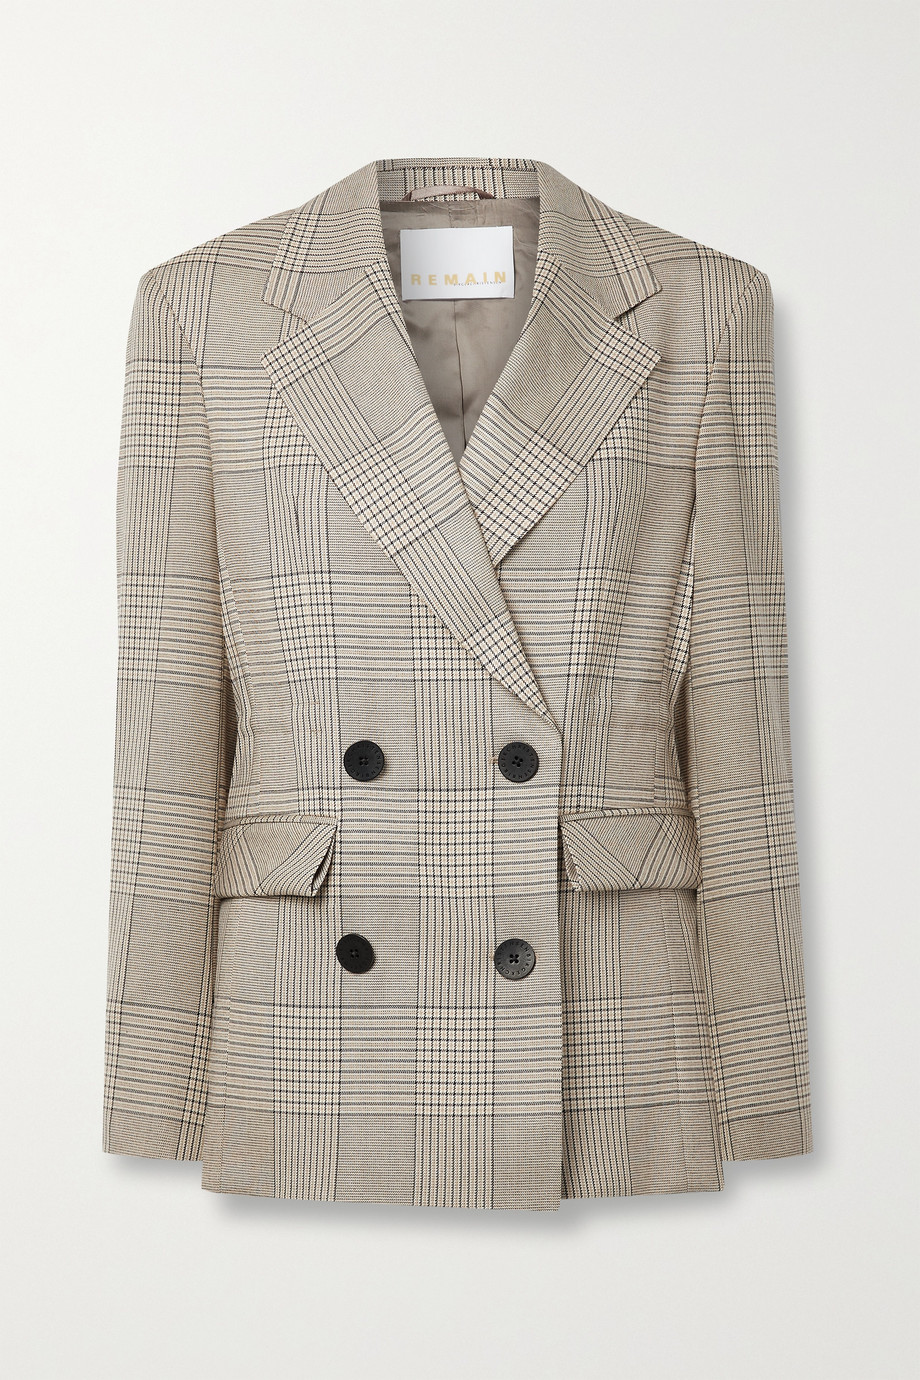 REMAIN Birger Christensen Daisy double-breasted Prince of Wales checked woven blazer